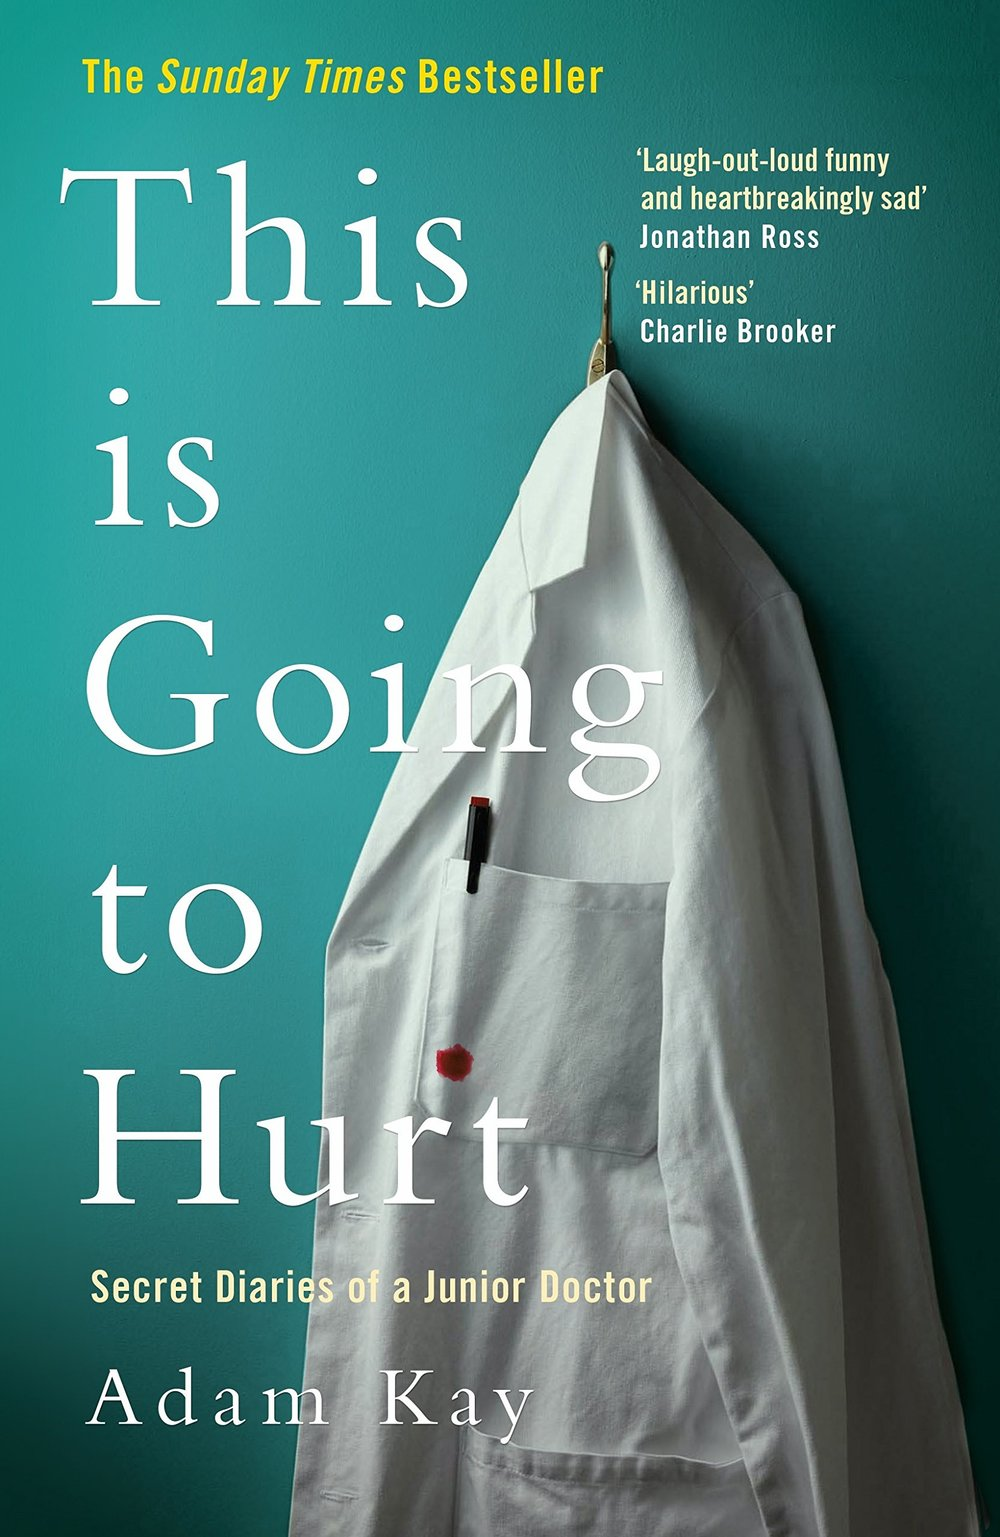 Front book cover of 'This is Going to Hurt: Secret Diaries of a Junior Doctor' by Adam Kay. The image displays a white lab coat hung up on a hook against a teal coloured wall. There is pen placed in the breast pocket of the coat, and a spot of blood on the pocket of the lab coat.